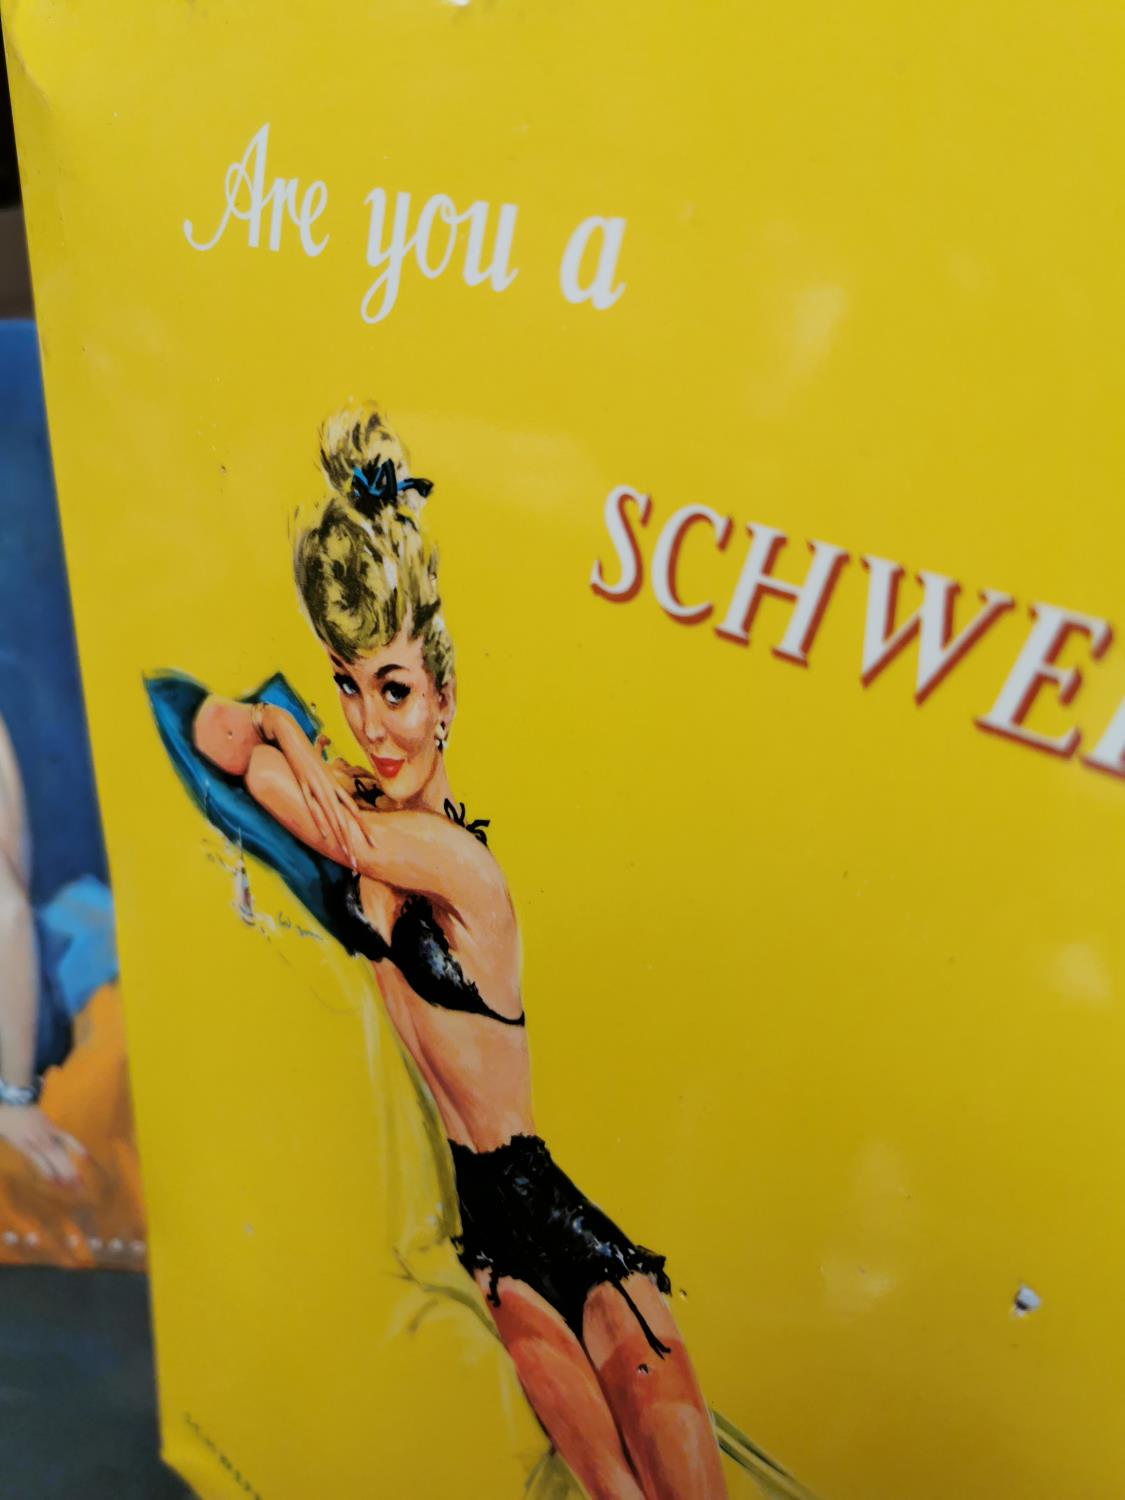 Schweppes advertising showcard. - Image 2 of 2